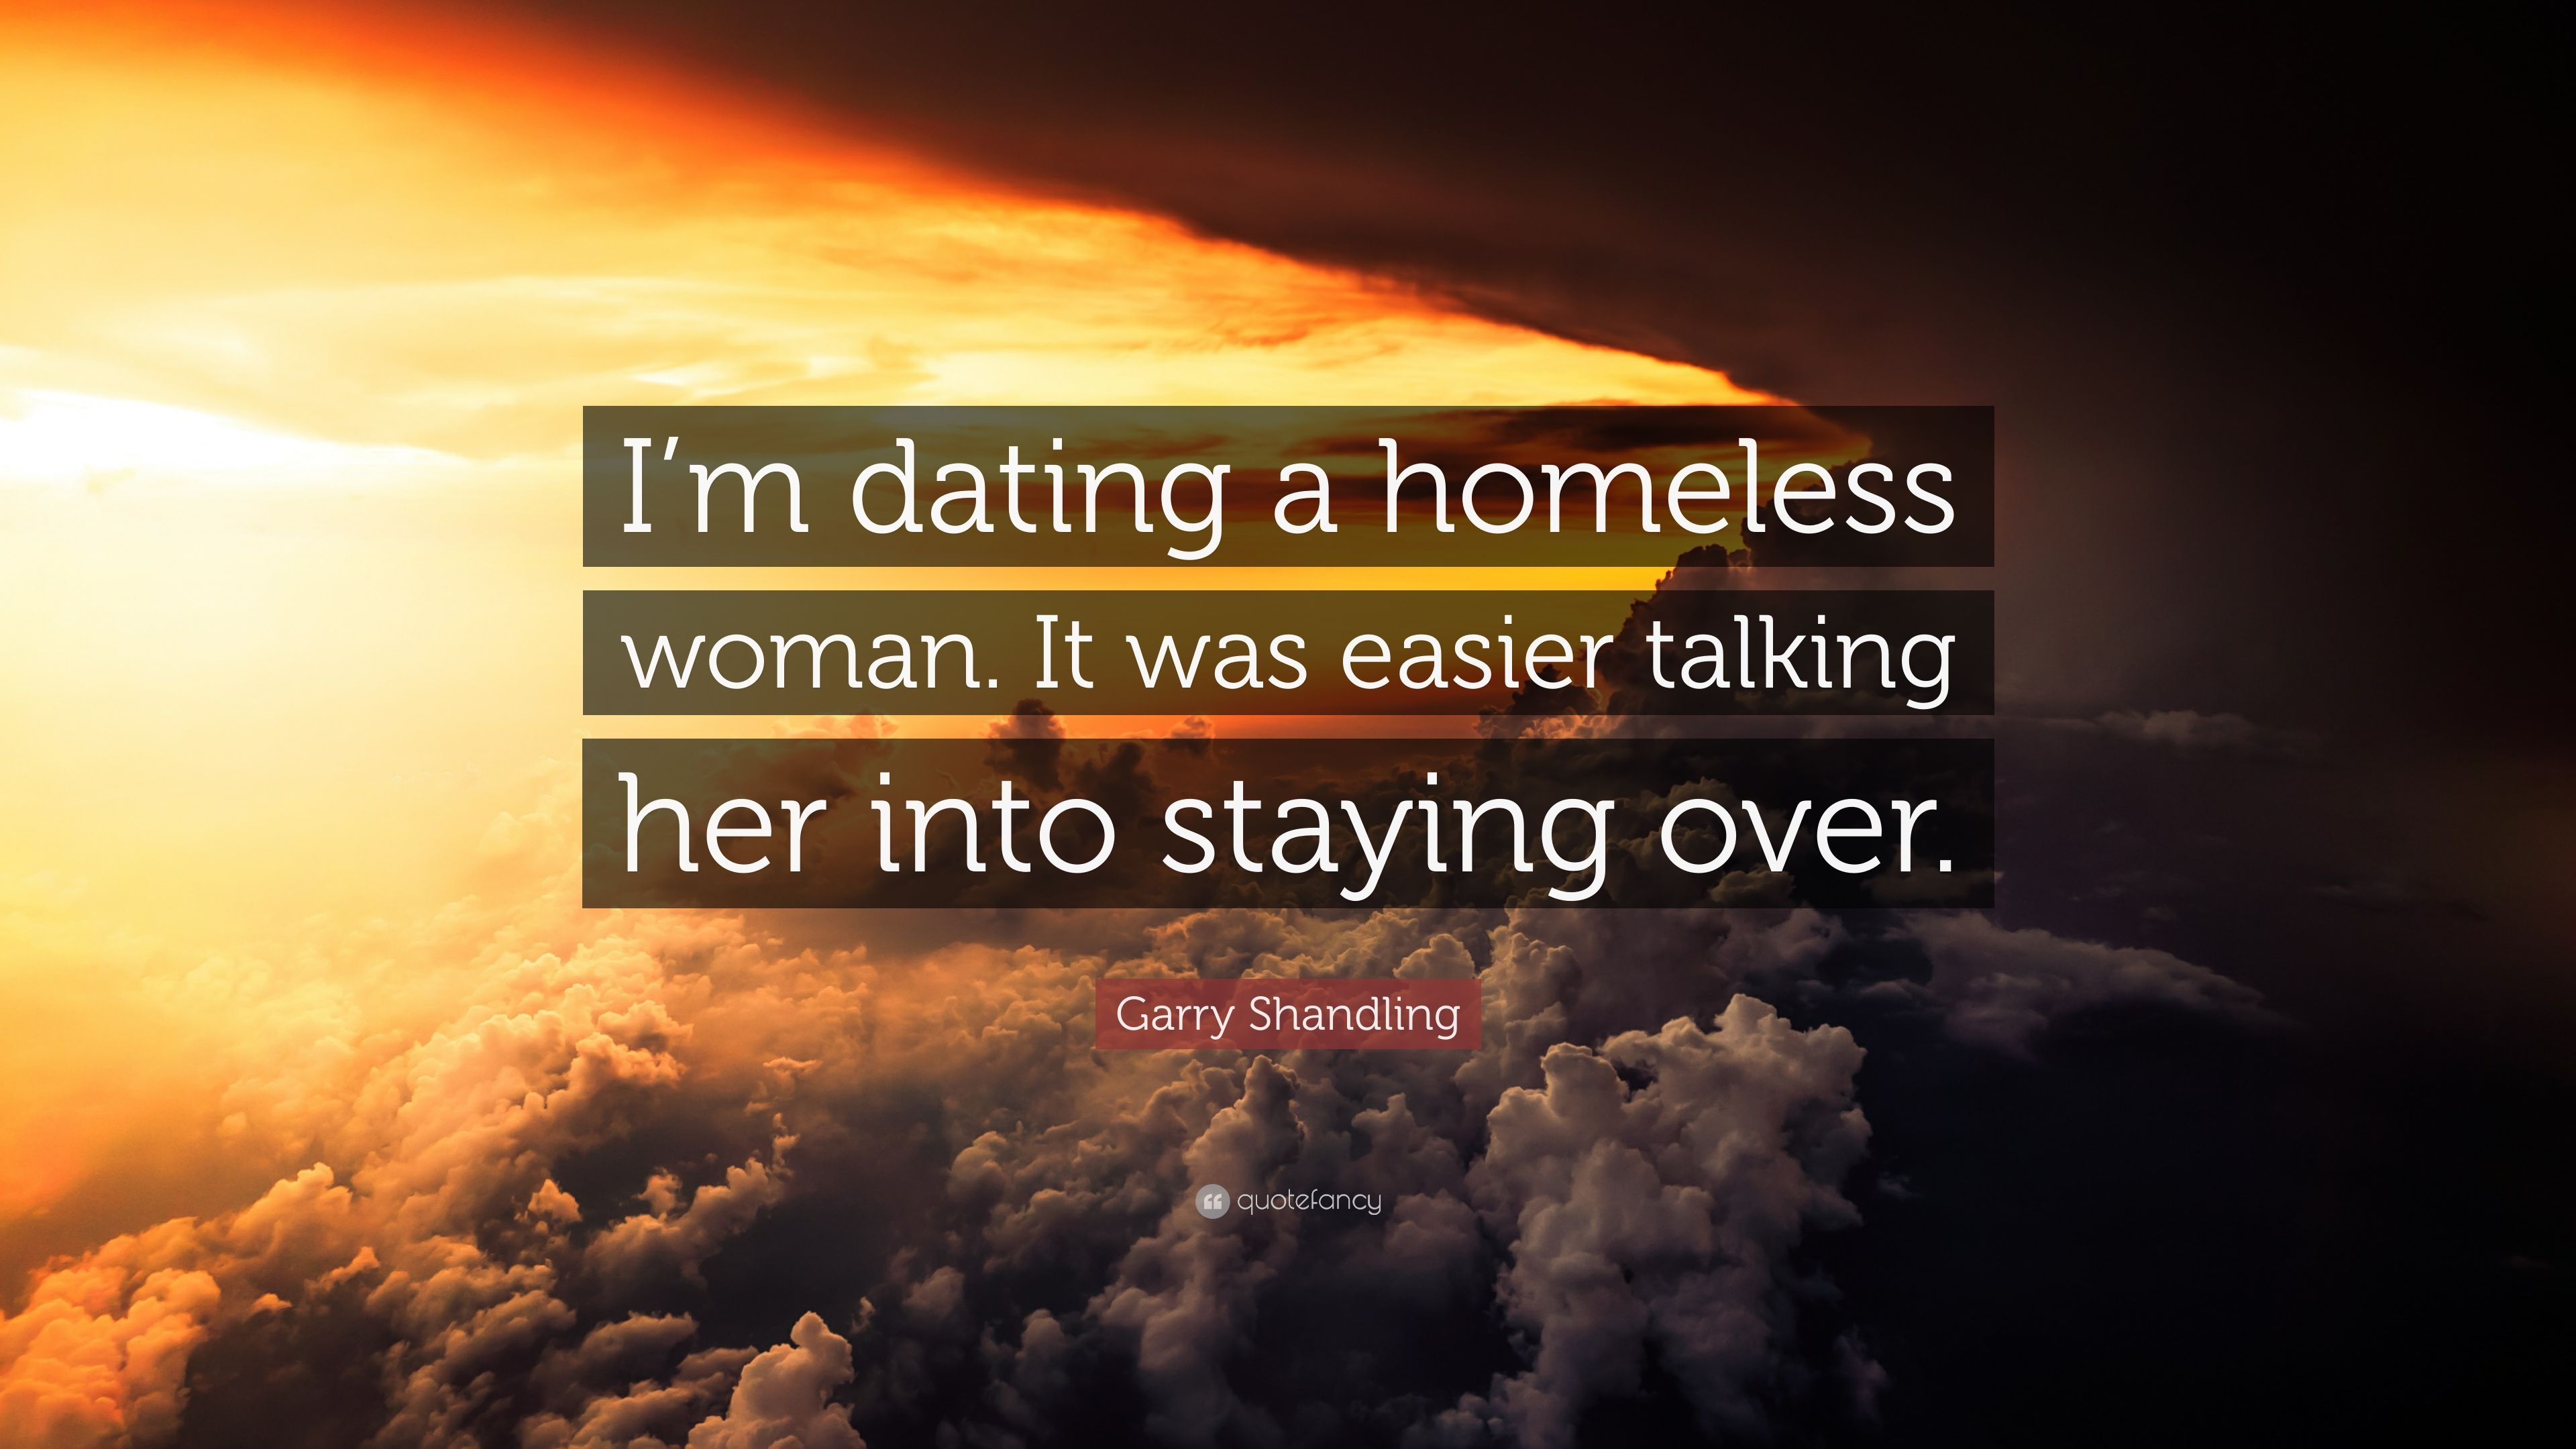 Dating homeless woman